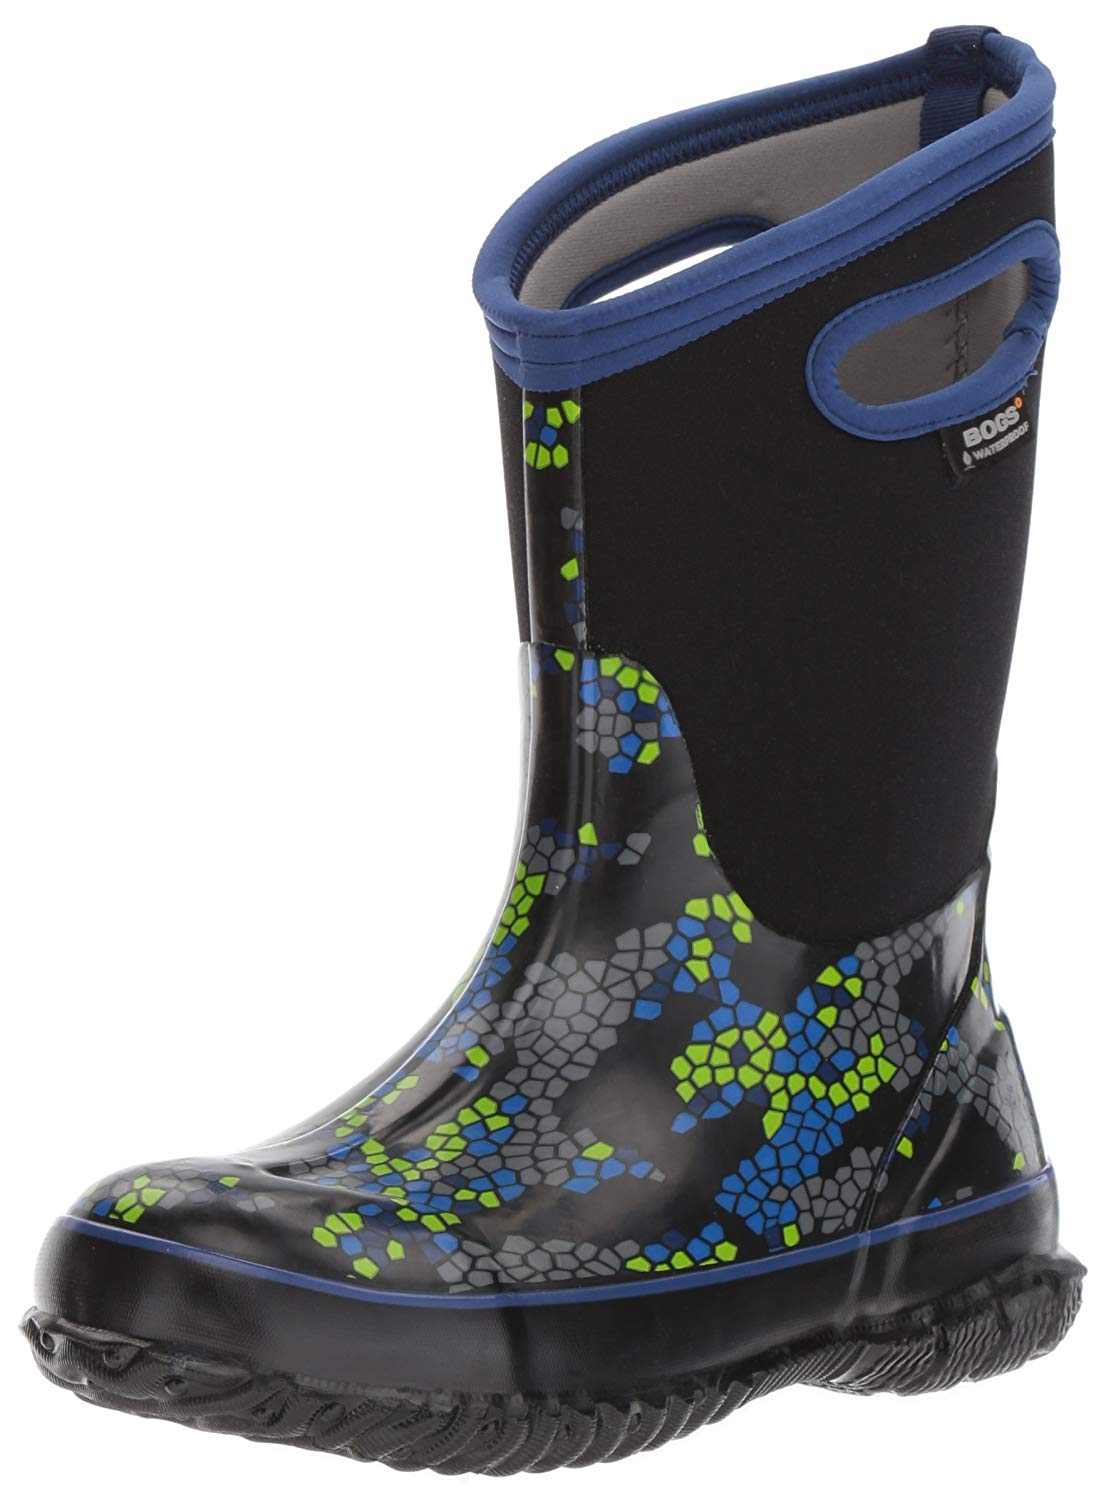 7edf4063b Bogs Kids Classic High Waterproof Insulated Rubber Rain and Winter Snow Boot  .